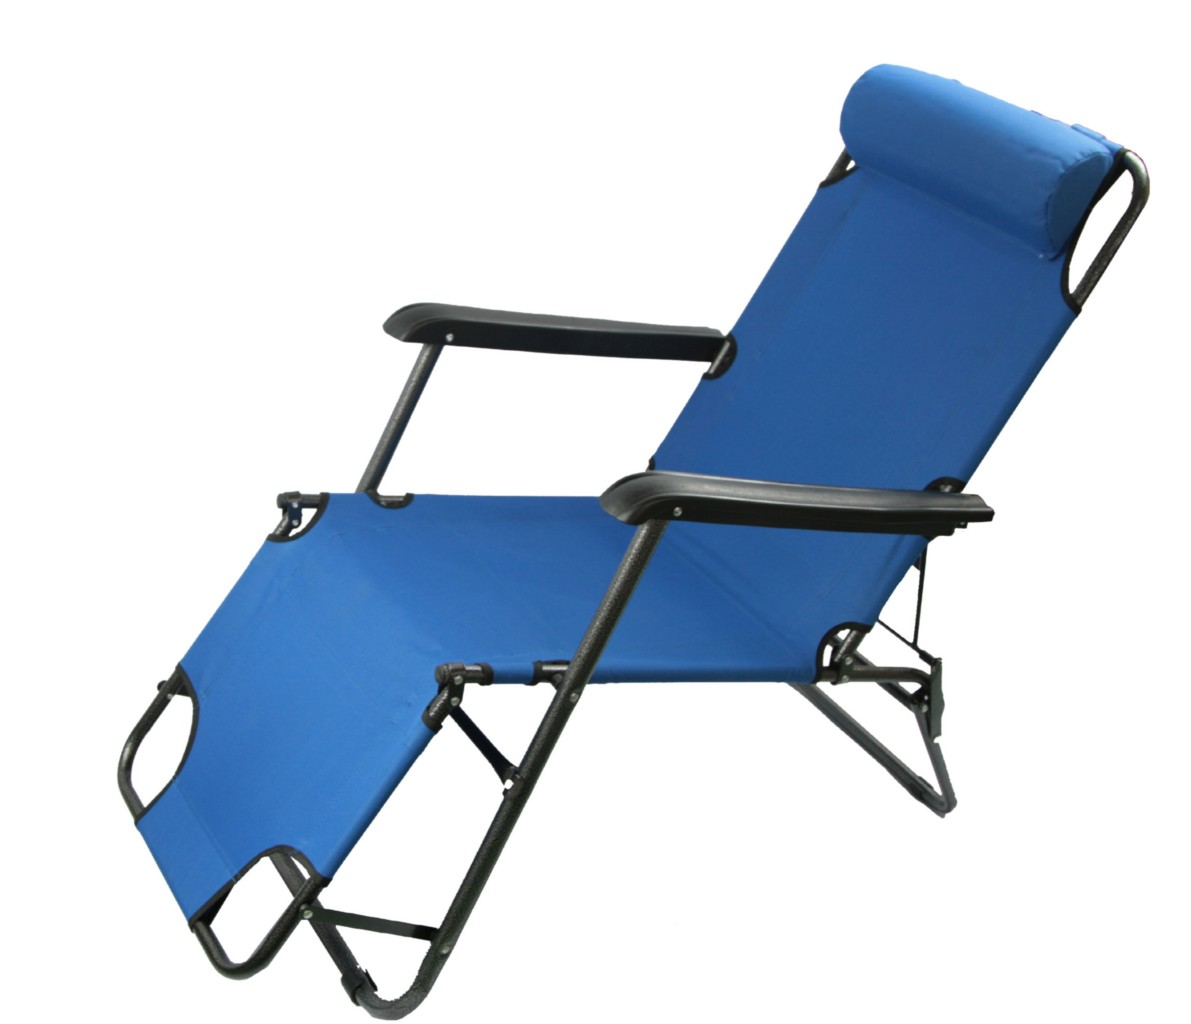 Folding Lounge Chairs New Light Portable Folding Recliner Outdoor Lounge Chair